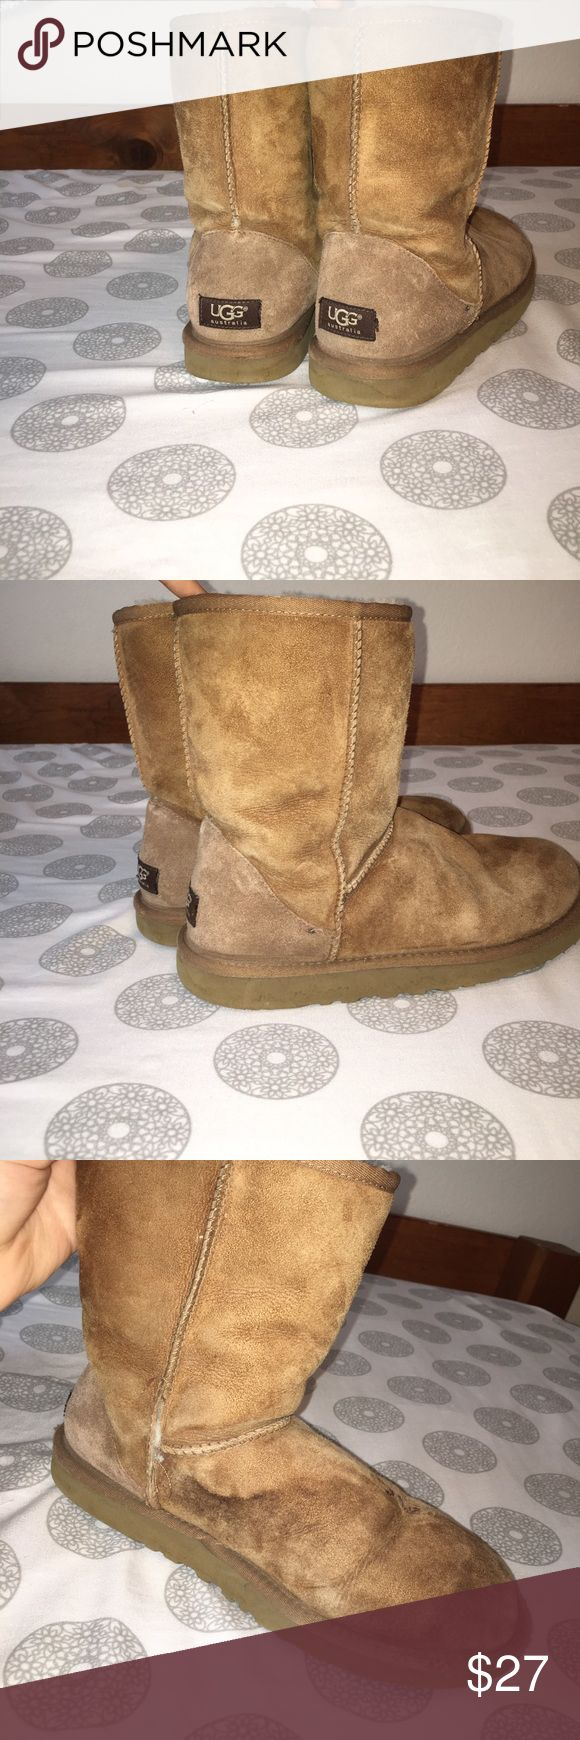 Chestnut uggs Cozy chestnut uggs. They are fairly worn, and the left shoe has a water mark but with the right materials you can get it off. The stitching also came undone on that boot, but can be fixed. The fur inside is still in good condition too. The price reflects how worn they are, and I'm open to price negotiations!p UGG Shoes Winter & Rain Boots